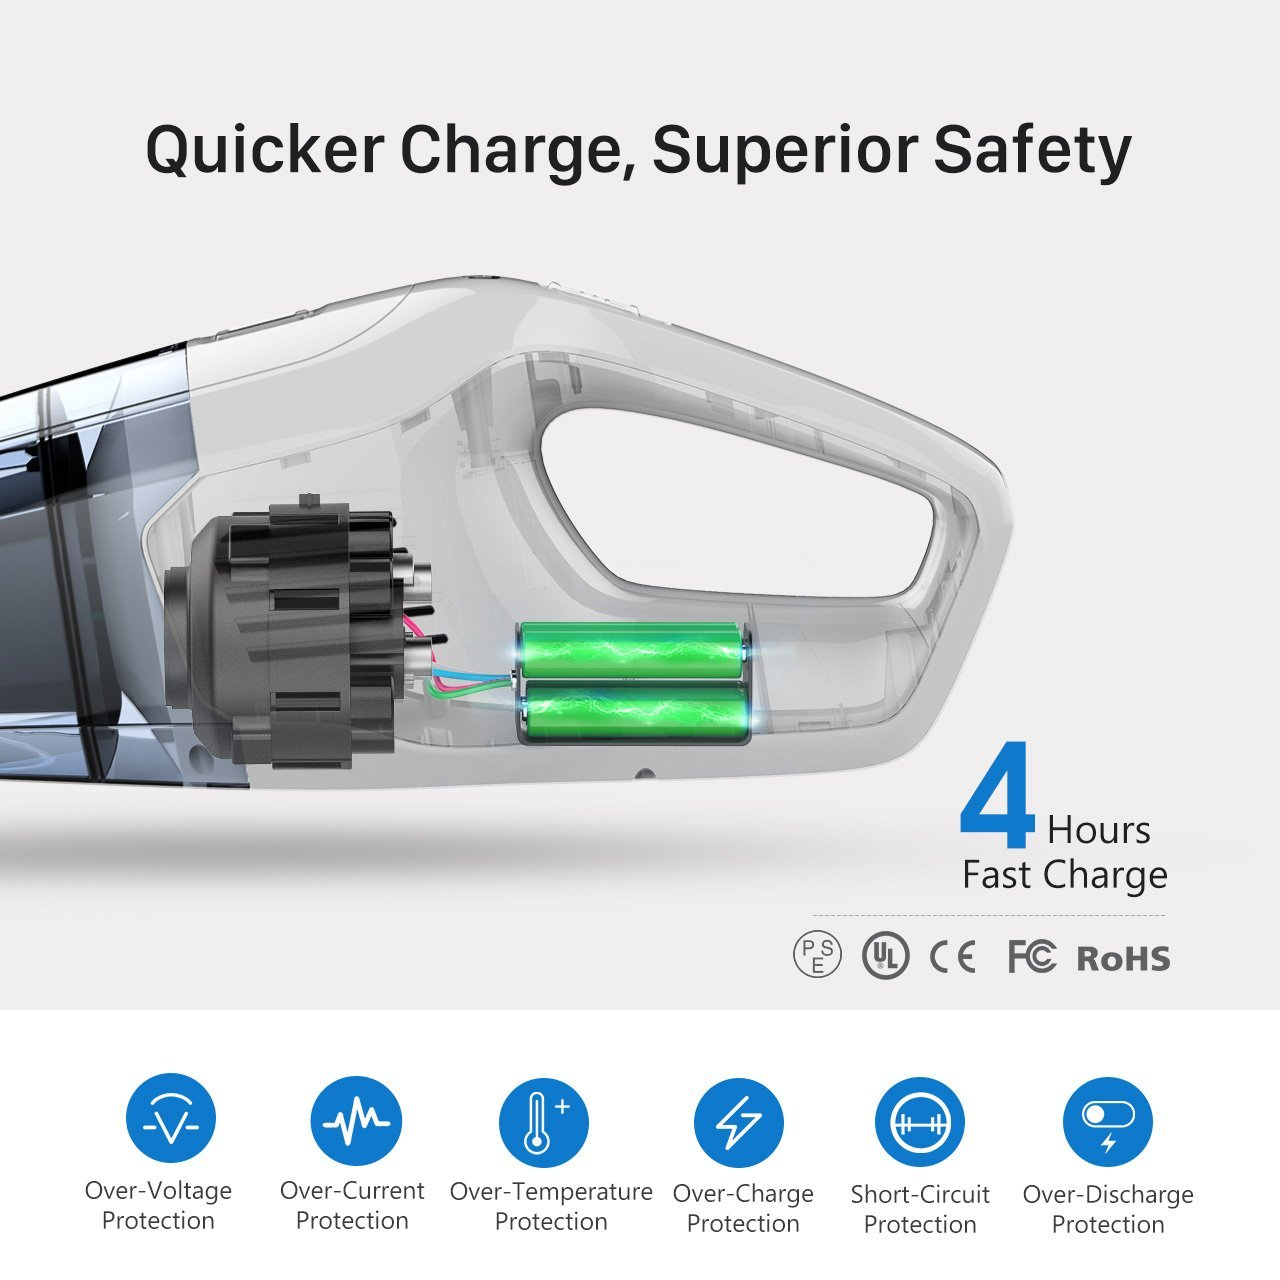 Holife Cordless Handheld Vacuum Cleaner 【2nd Gen】 14.8V 100W Strong Cyclonic Suction Portable Rechargeable Hand Held Vac Wet Dry Vacuum with Lithium and Quick Charge Tech for Home